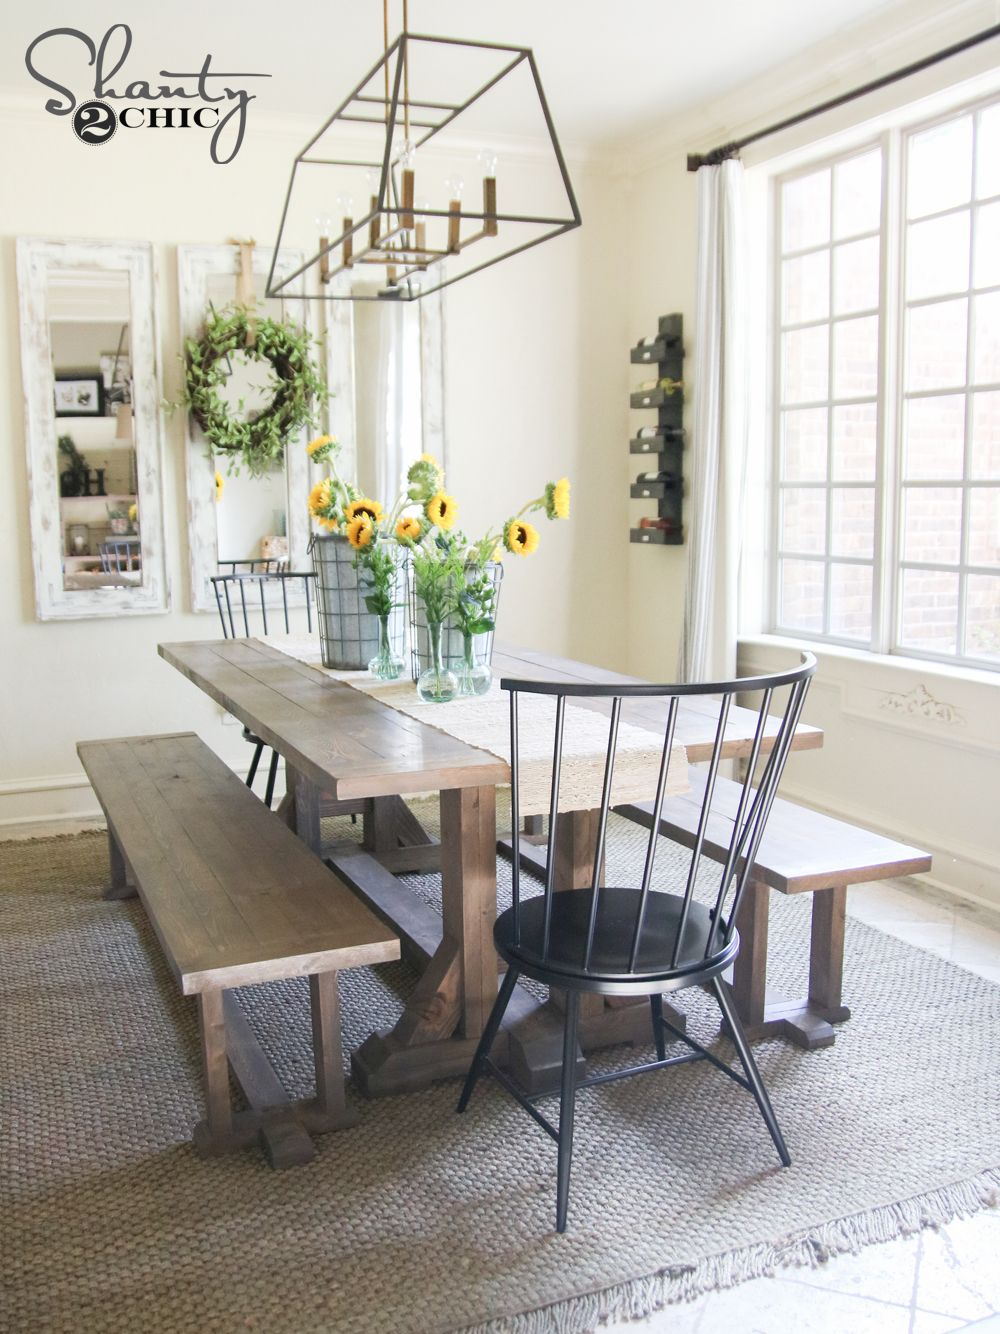 diy pottery barn inspired dining table for 100 diy dining table farmhouse table plans on farmhouse kitchen table diy id=91947